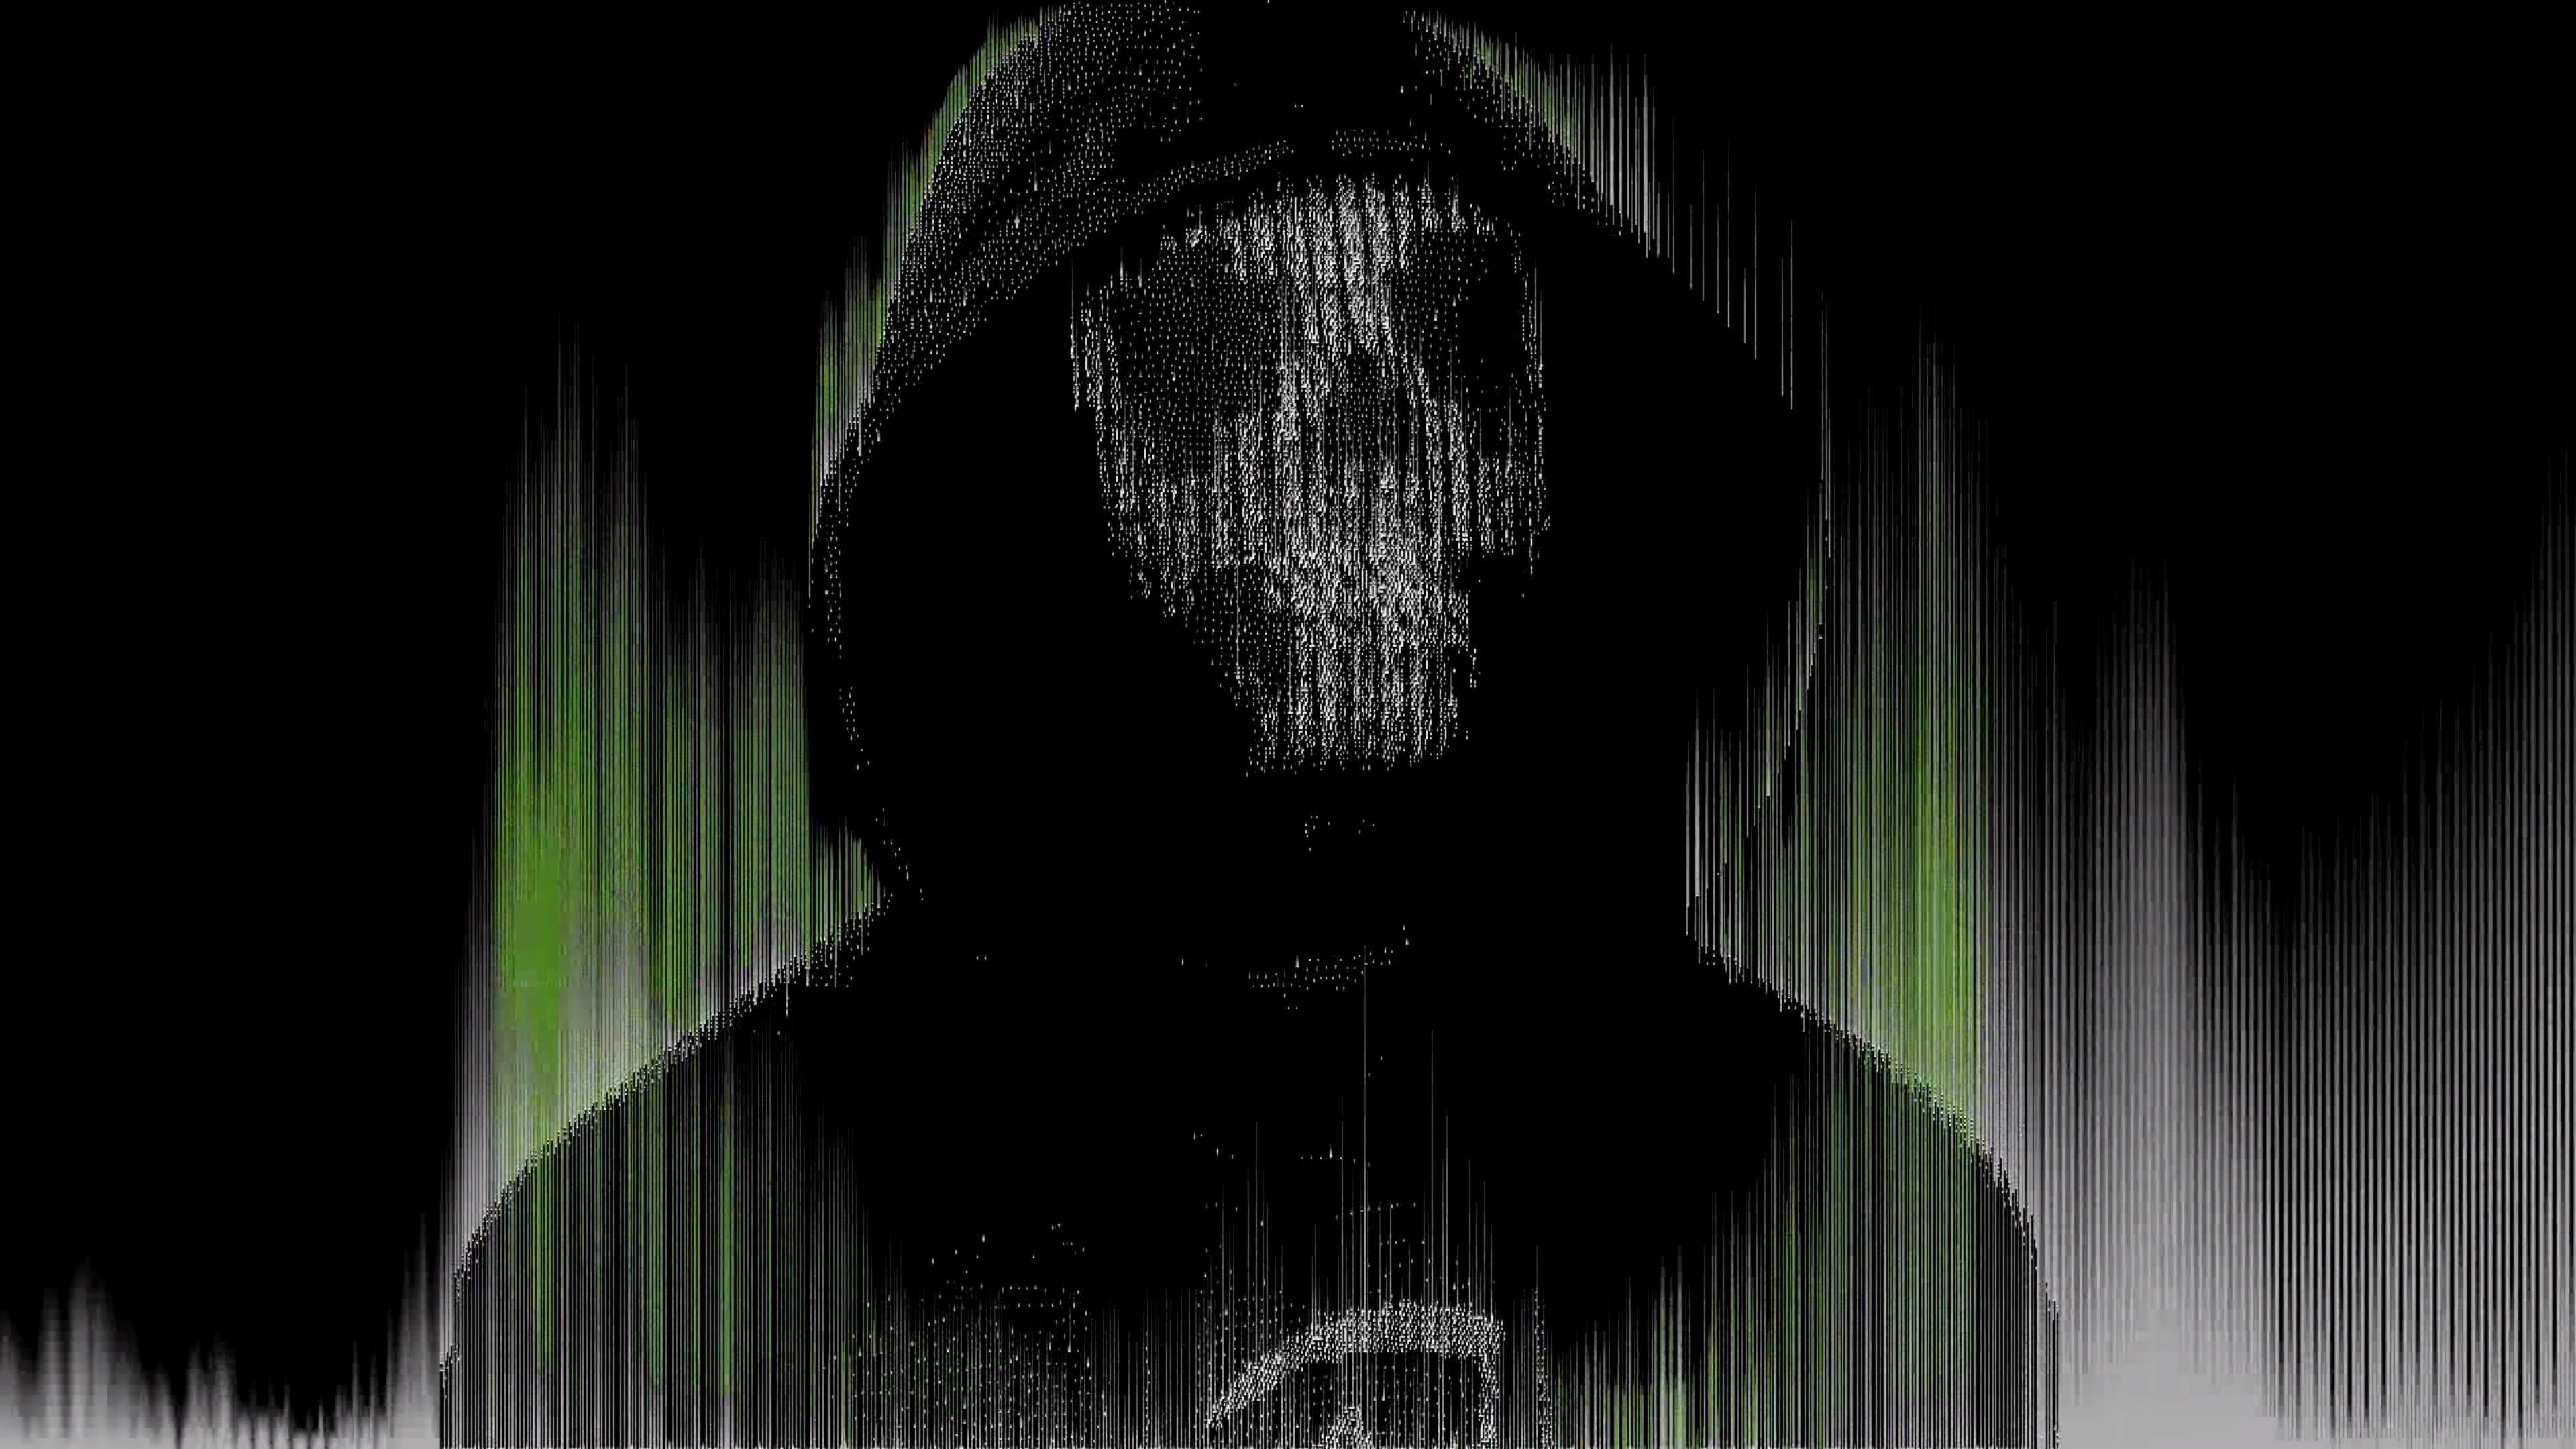 Hacker 4k Wallpapers Top Free Hacker 4k Backgrounds Wallpaperaccess